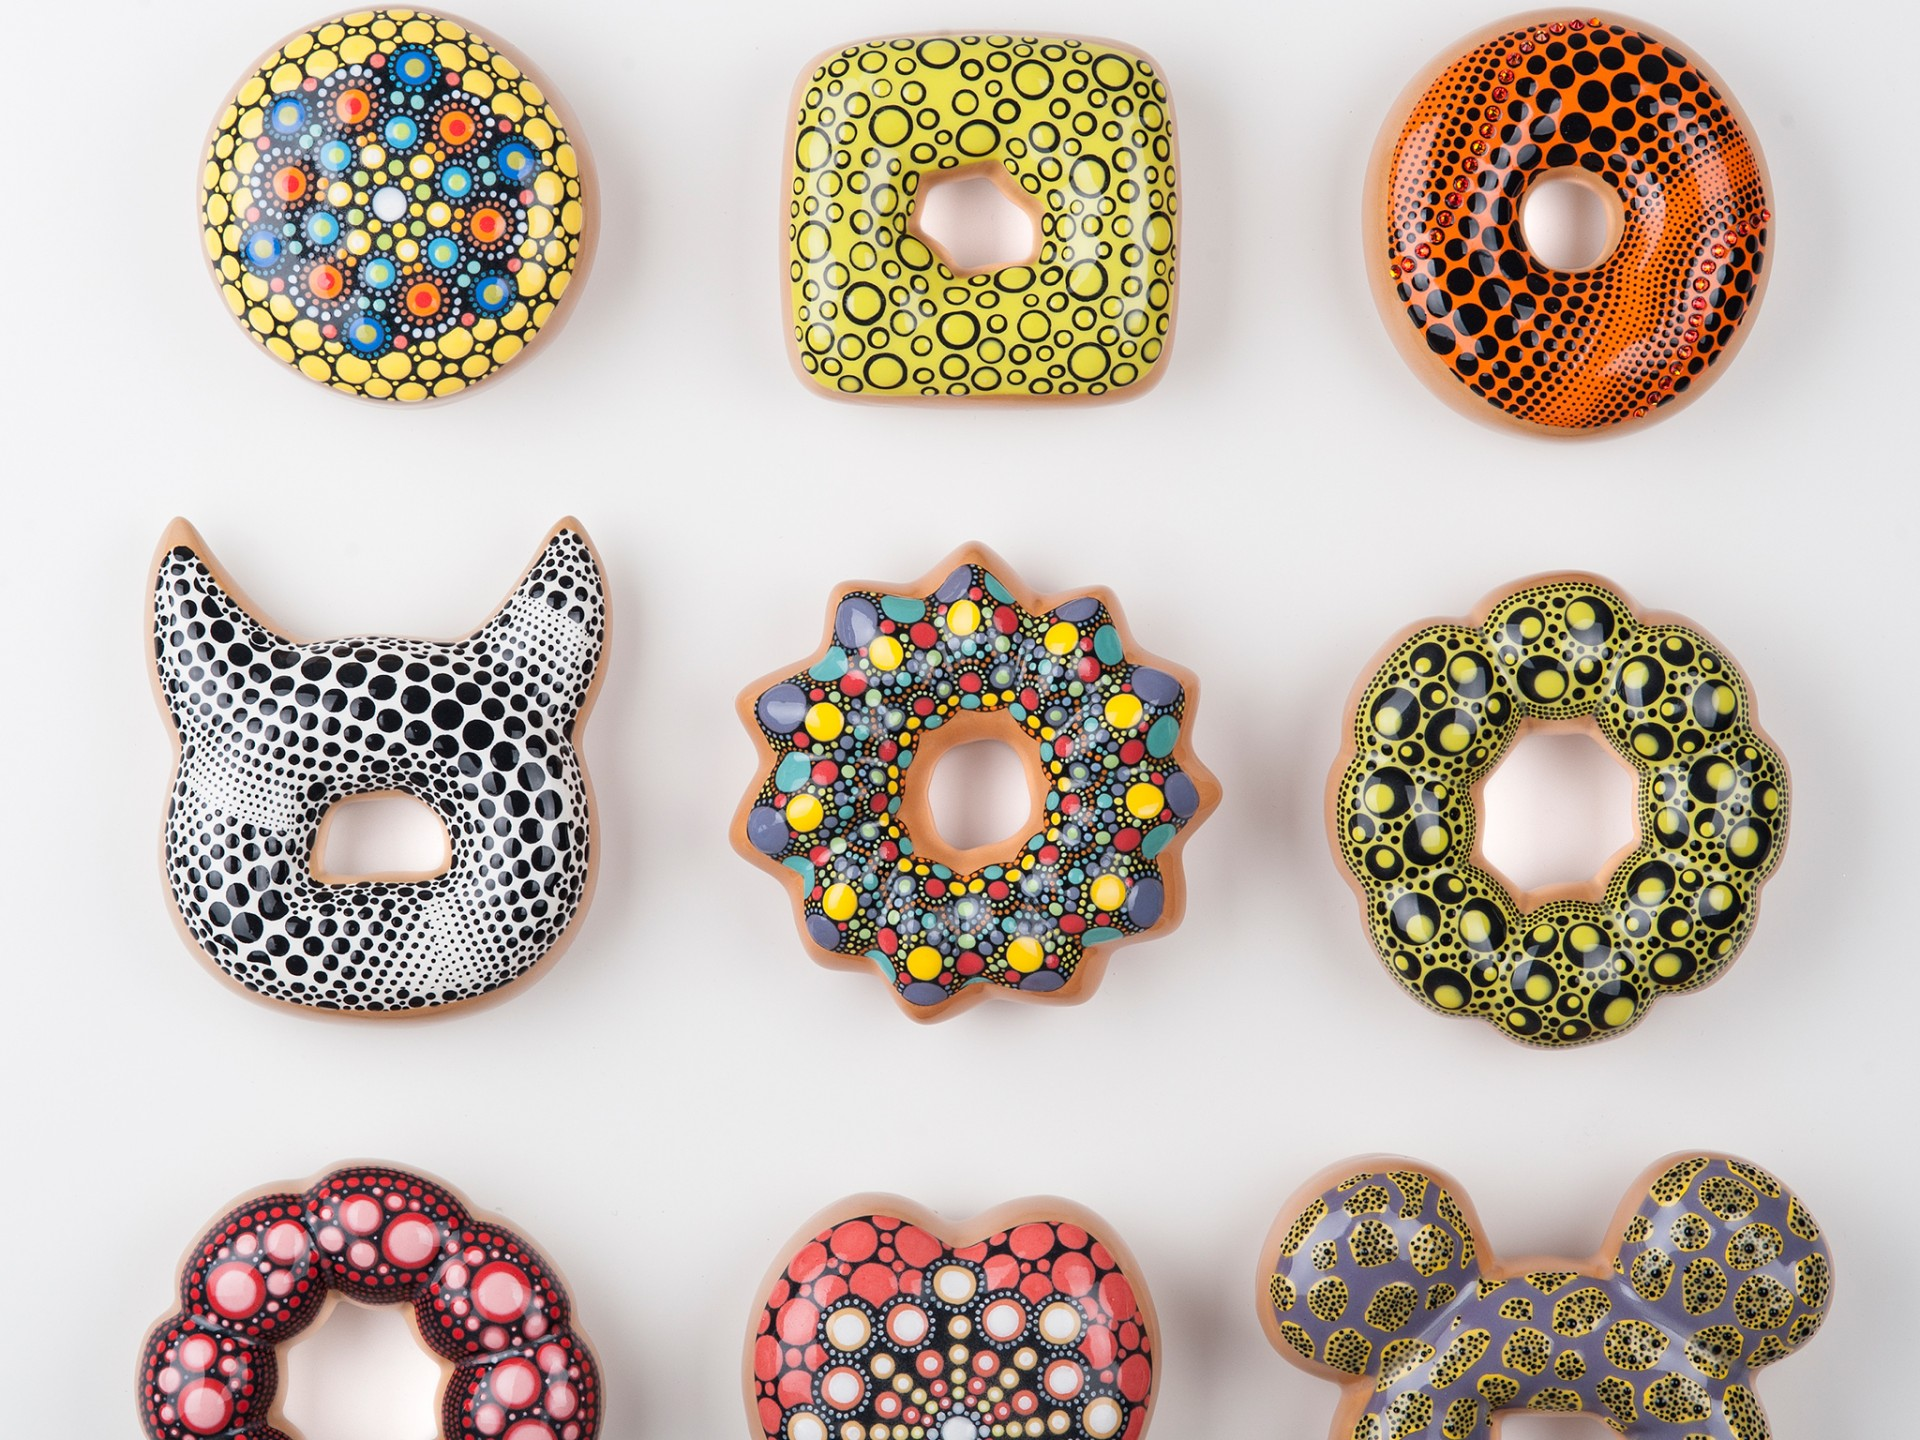 Pop Culture Inspired Ceramic Donuts (5 pics)